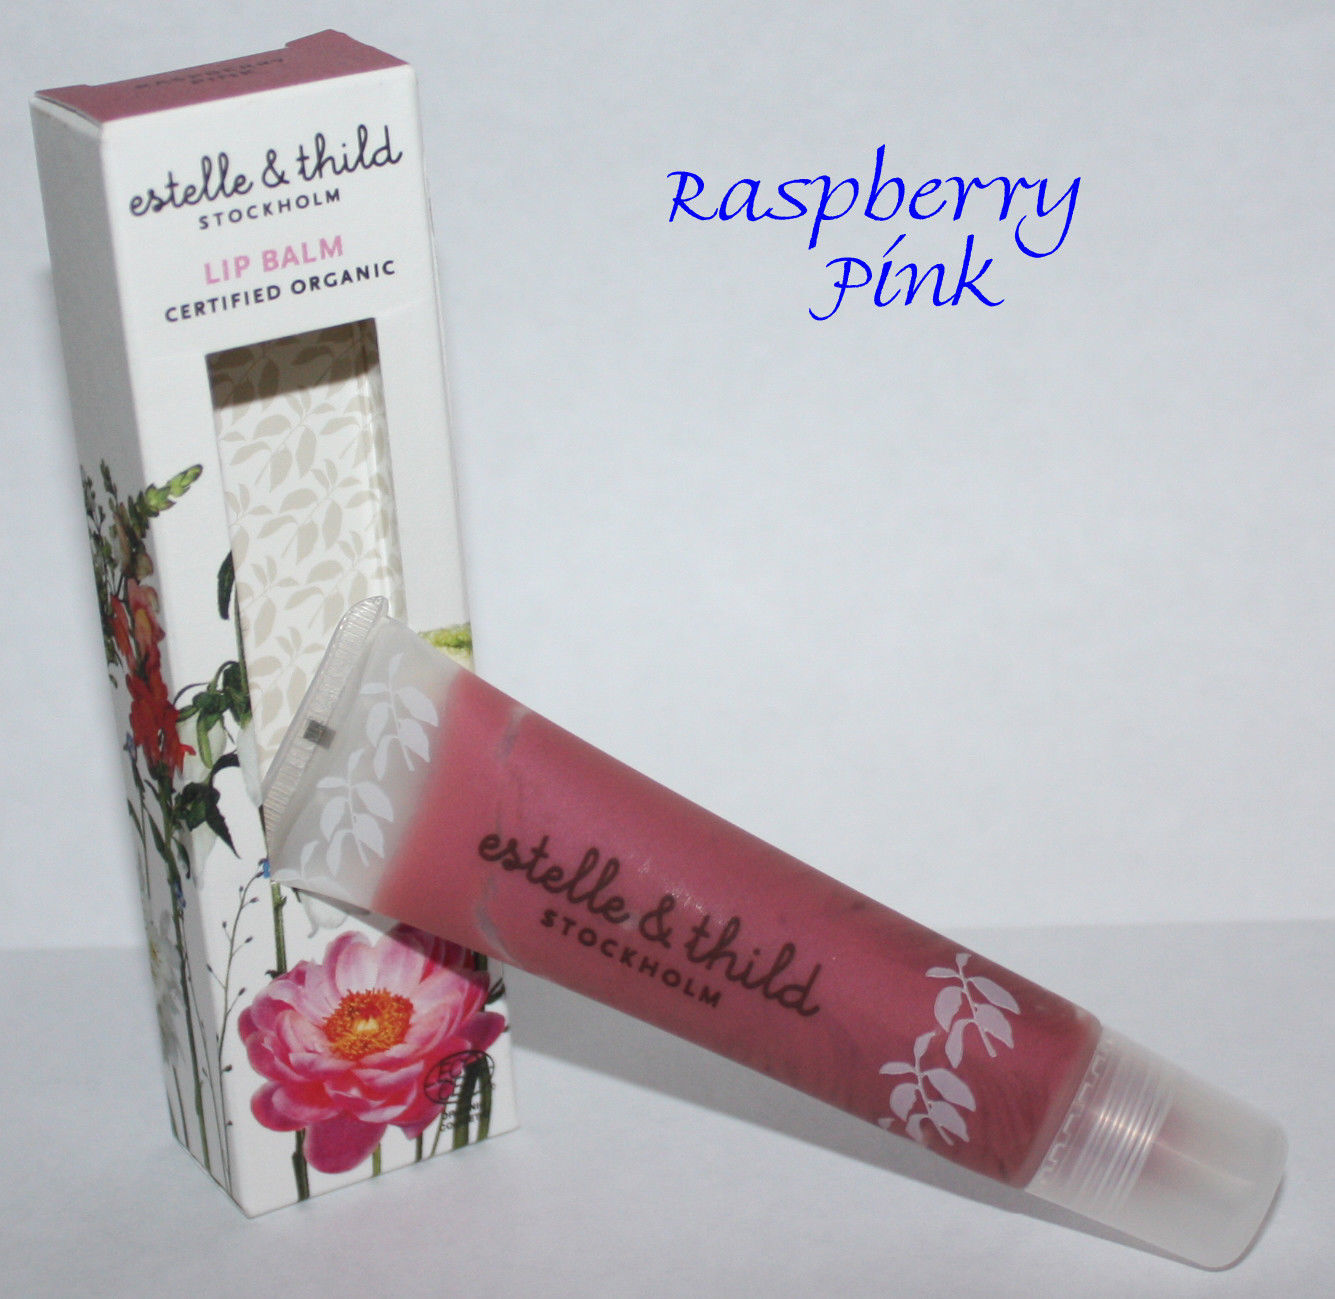 Estelle & Thild Stockholm Certified Organic RASPBERRY PINK Lip Balm 0.52 oz 10841